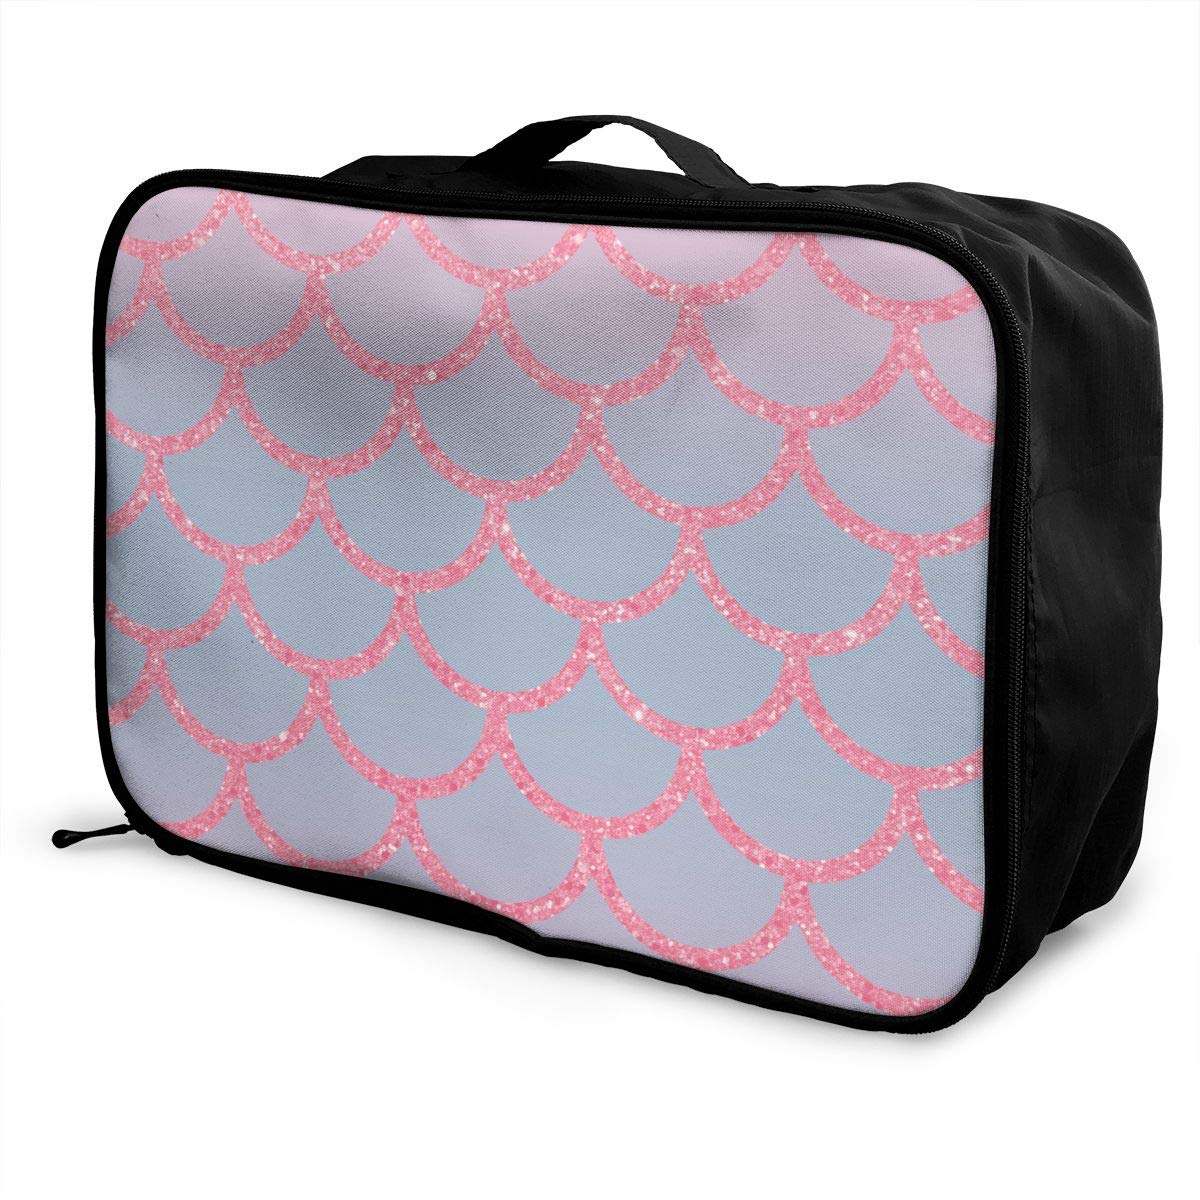 Women /& Men Foldable Travel Duffel Bag Mermaid Fish Scales Pink For Luggage Gym Sports